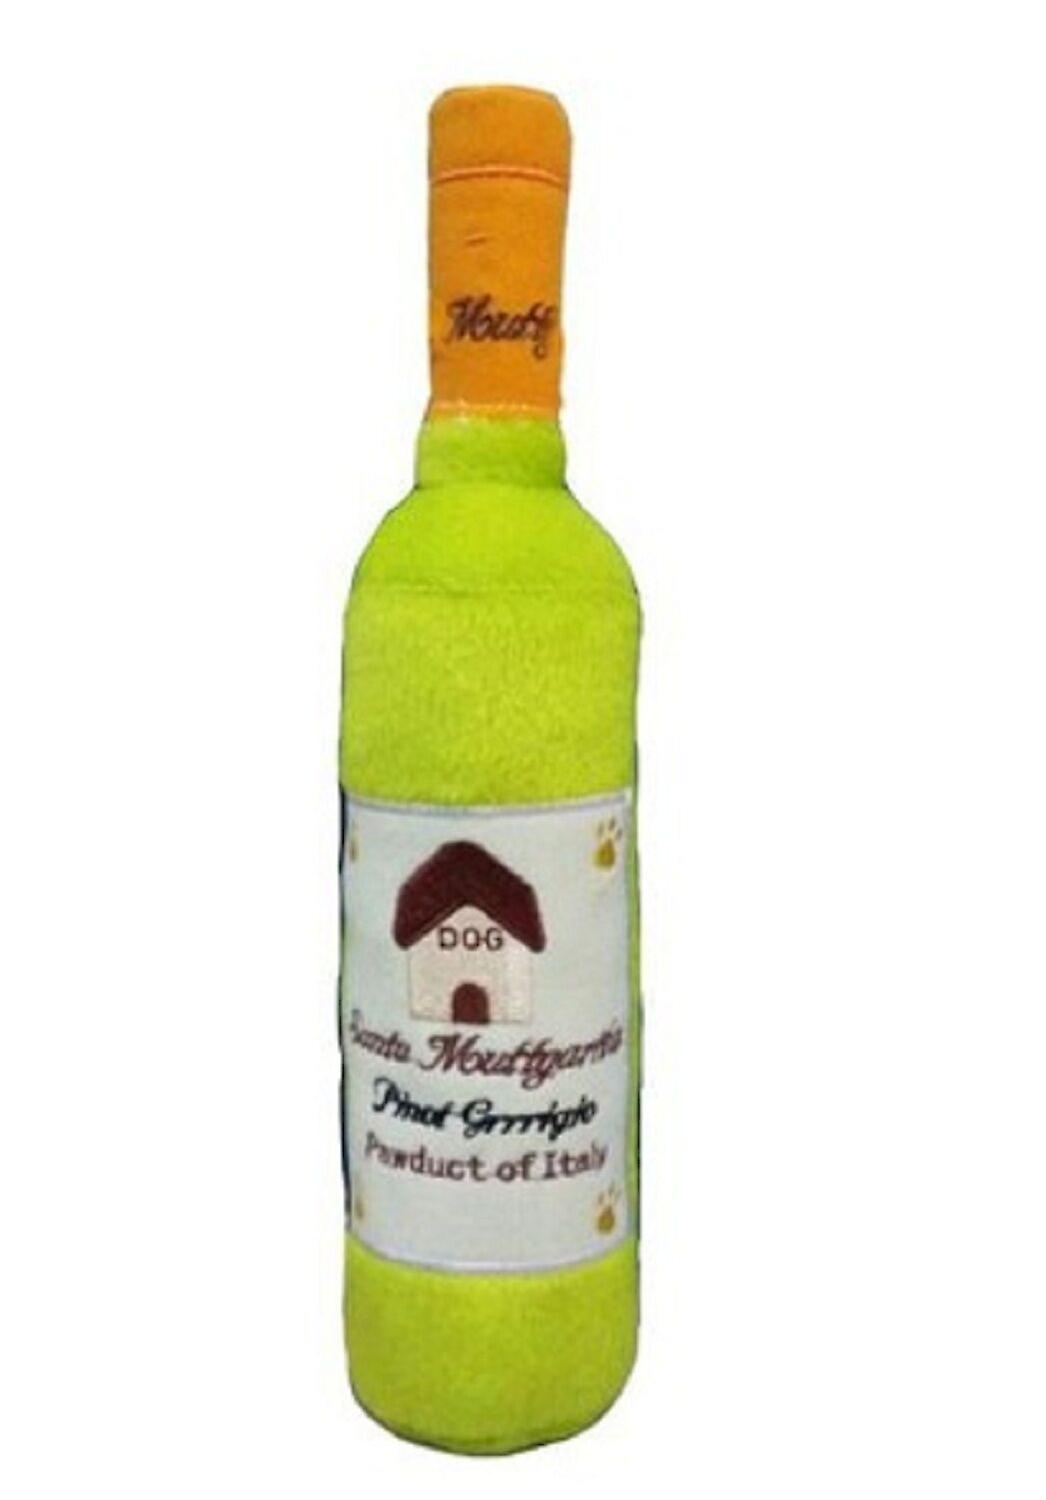 Santa Muttgarita Pinot Grrrigio Wine Bottle